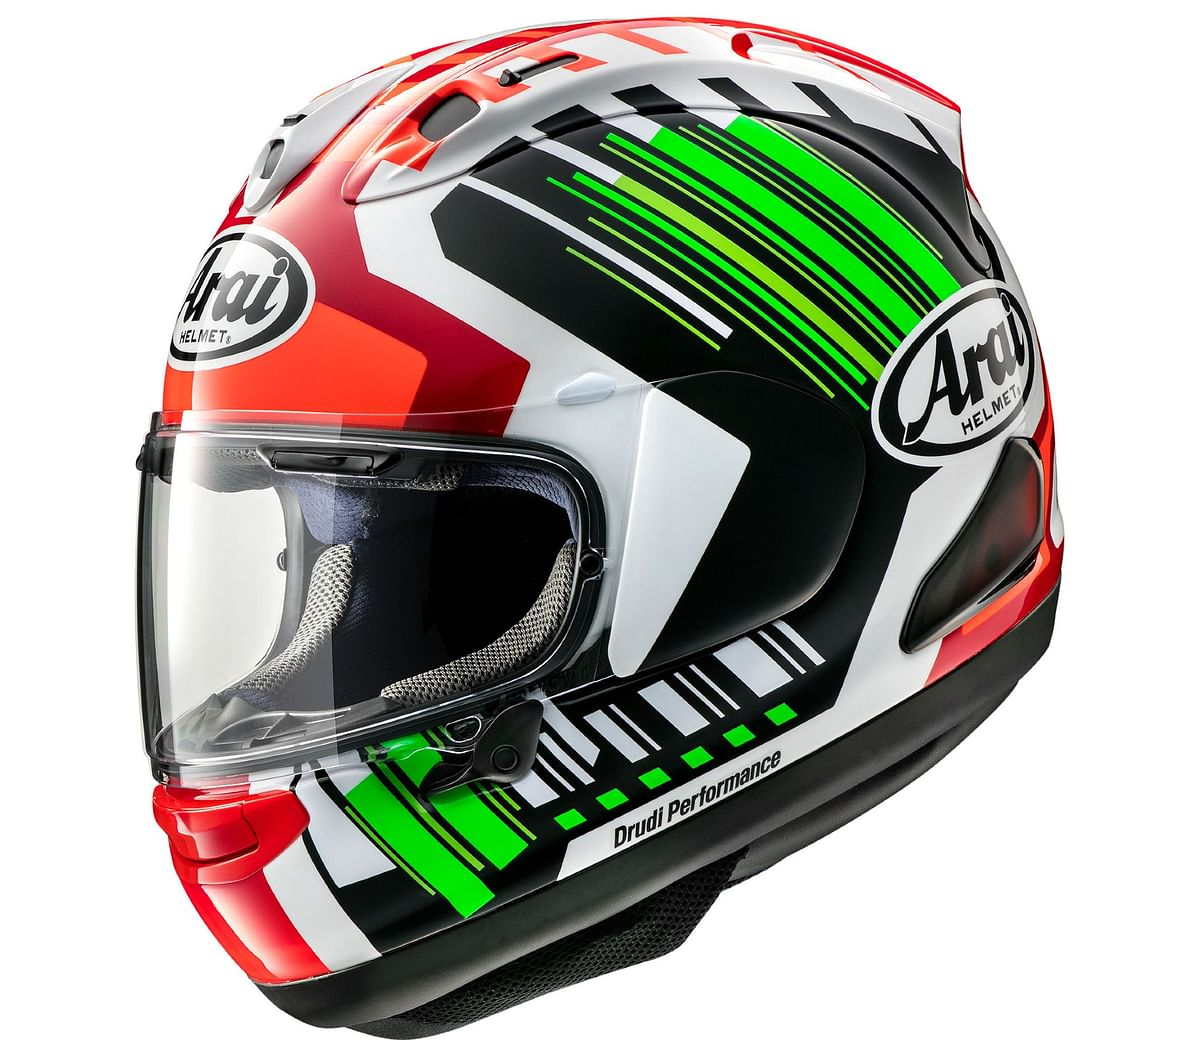 Arai is one of the few helmets with the Snell certification